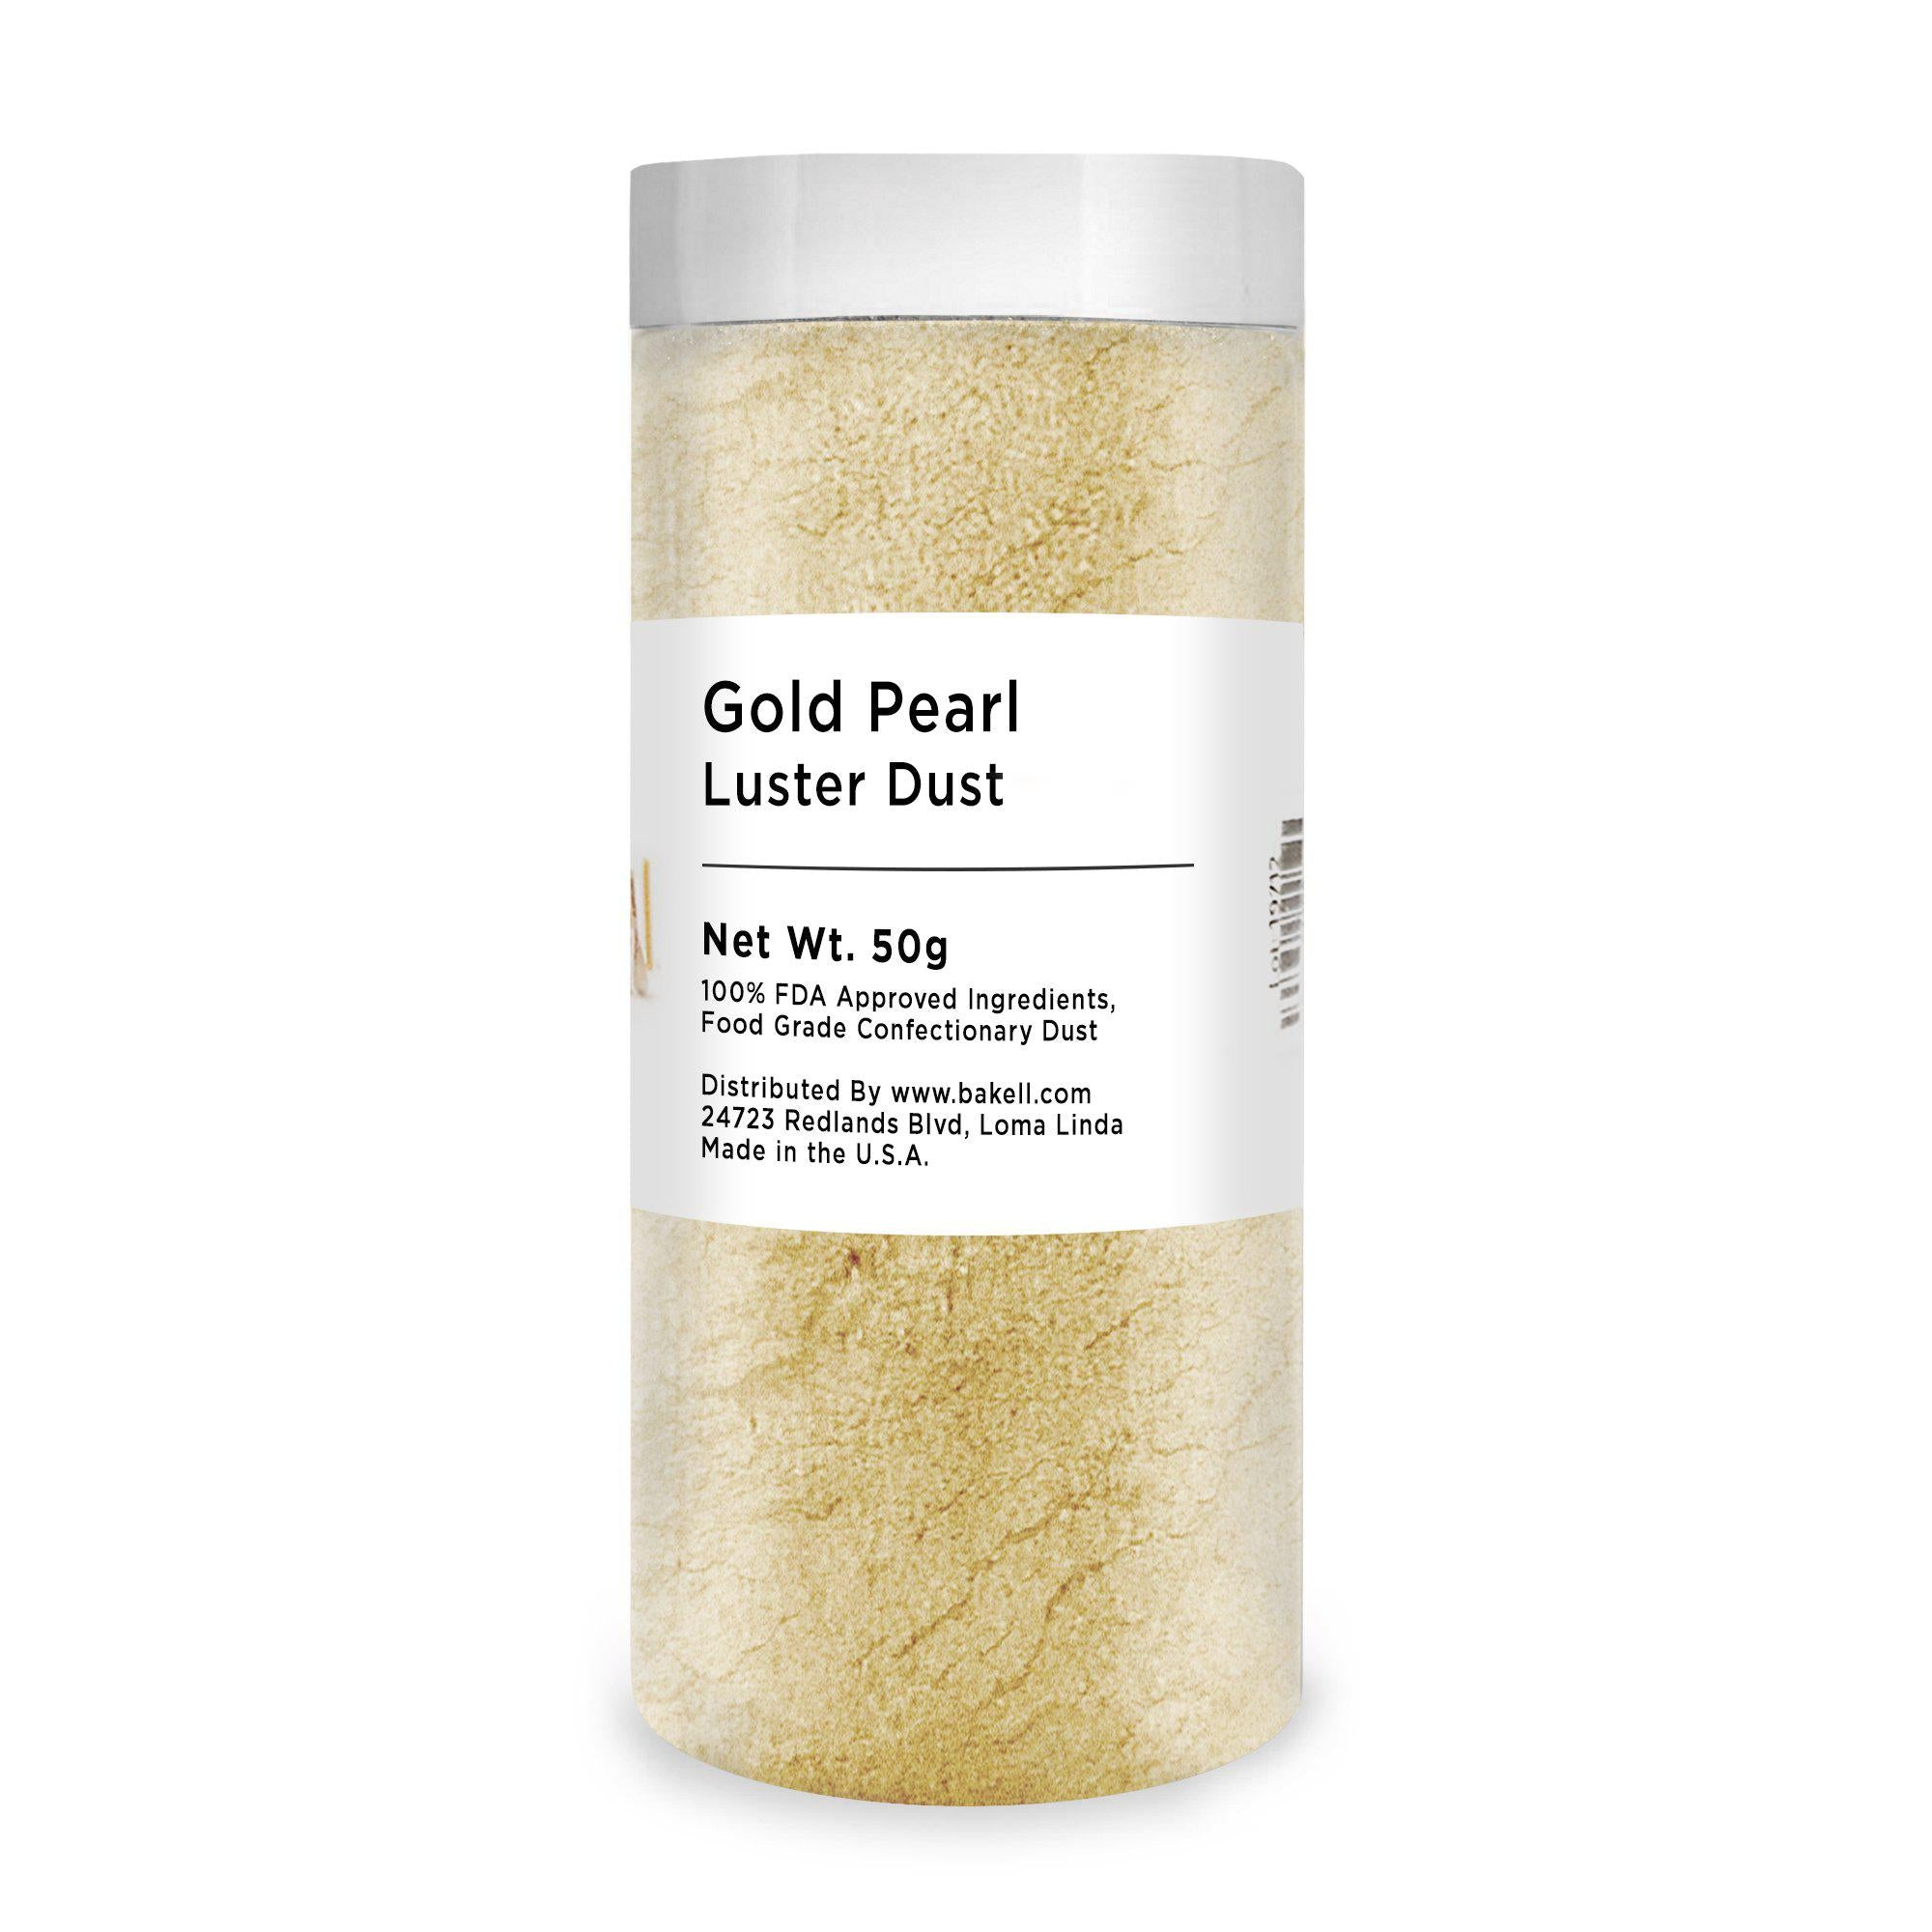 Edible Gold Pearl Luster Dust | FDA Approved Glitter & Kosher Certified Glitter | Edible Gold Paint | Pink MICA Powder | Bakell.com